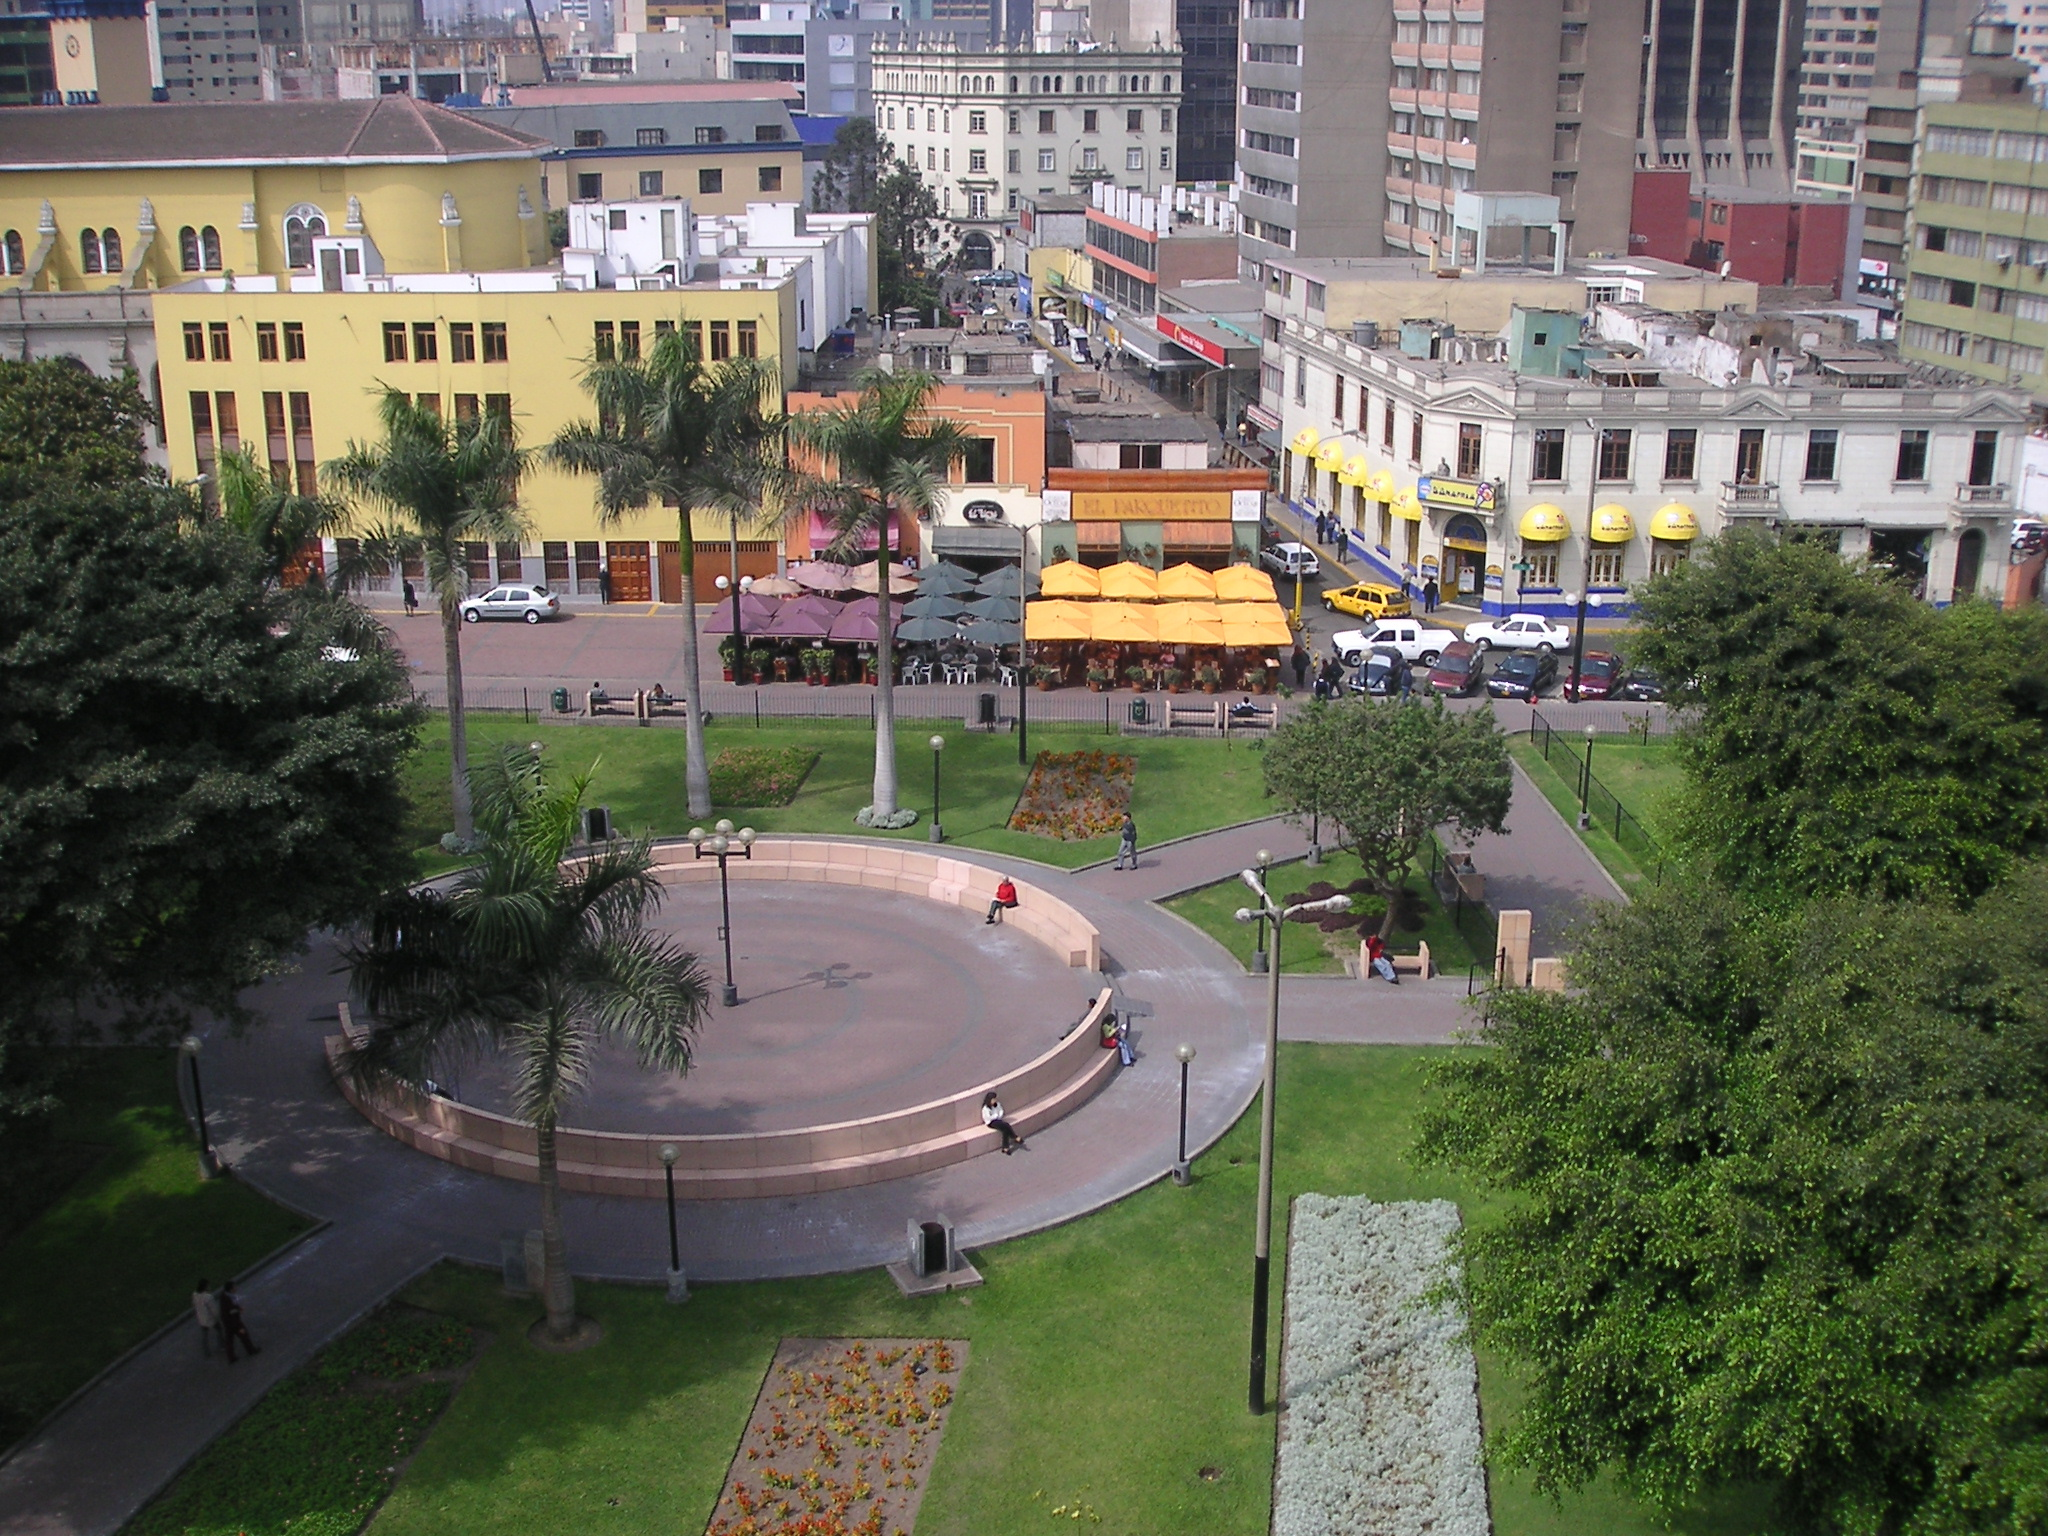 Parque Miraflores Lima, The view of Parque Kennedy, Miraflores, Lima, Perú from our classroom.